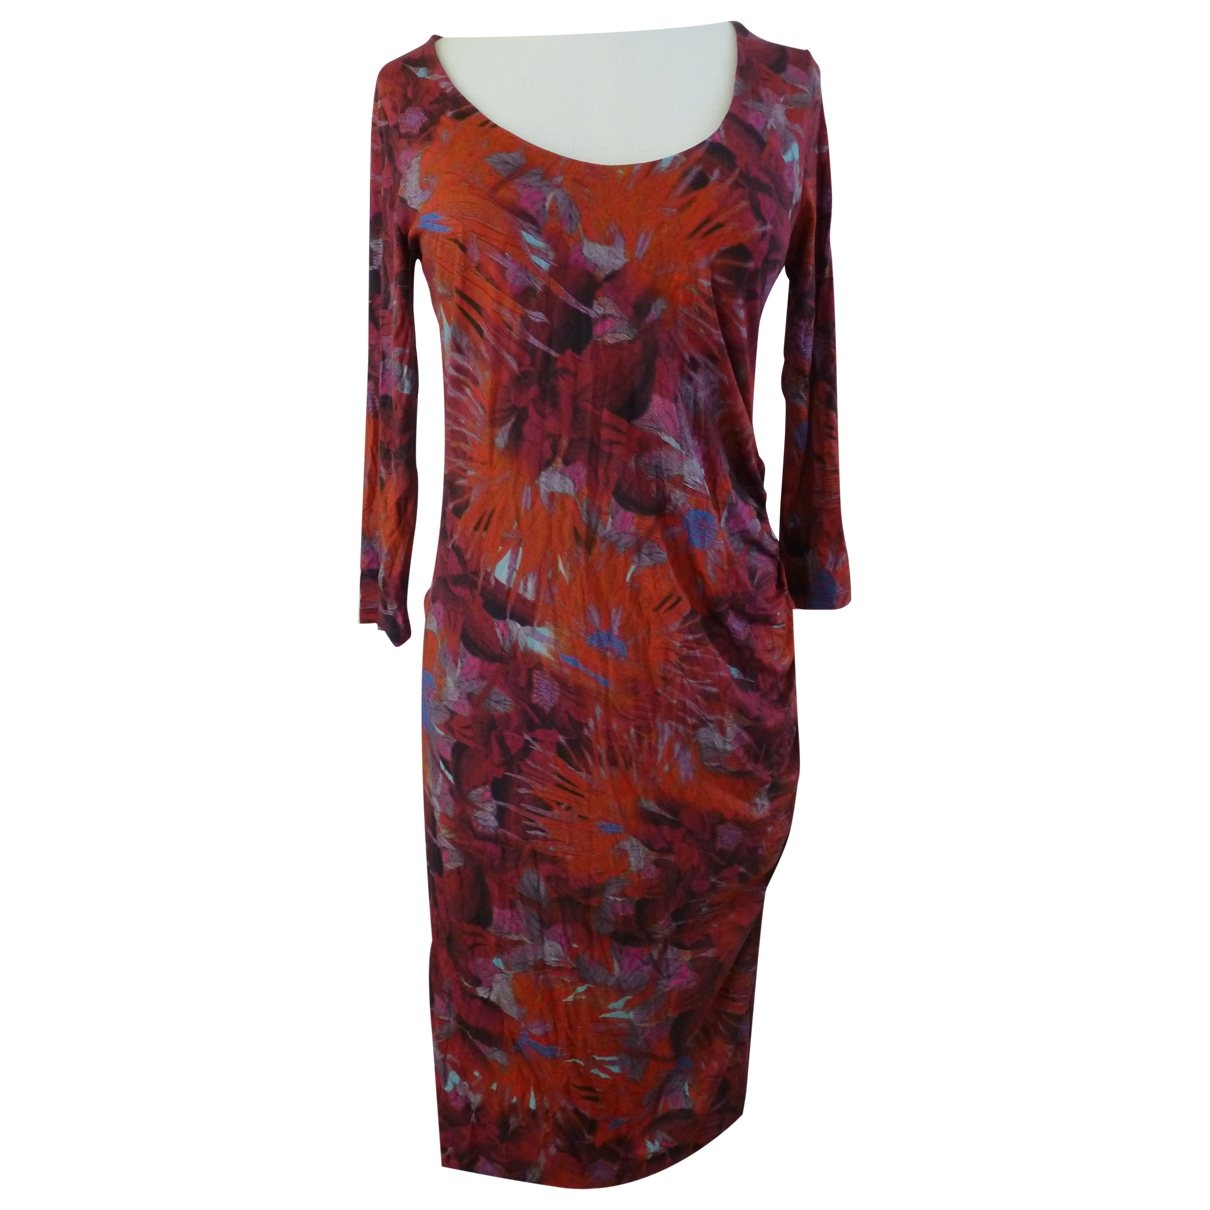 Erdem \N Red dress for Women 12 UK